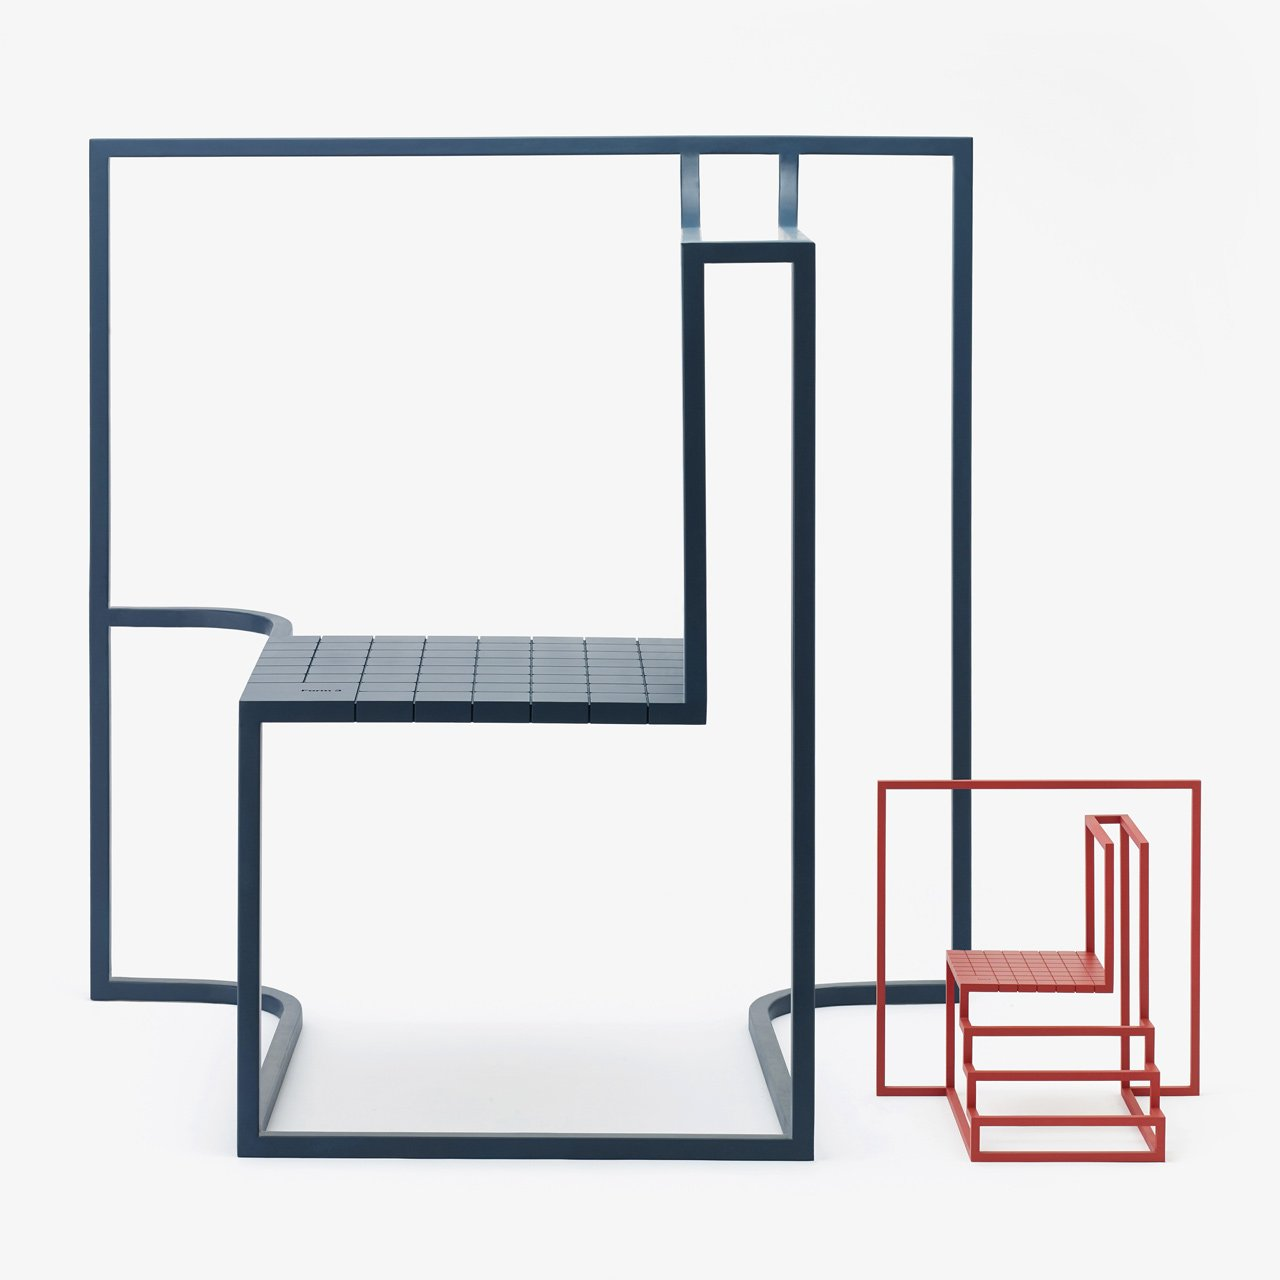 Shadows in the Windows by Andrea Ponti.Aproject that portrays Hong Kong's urban landscape through two symbolic elements: a window and a seat, in eight variations.